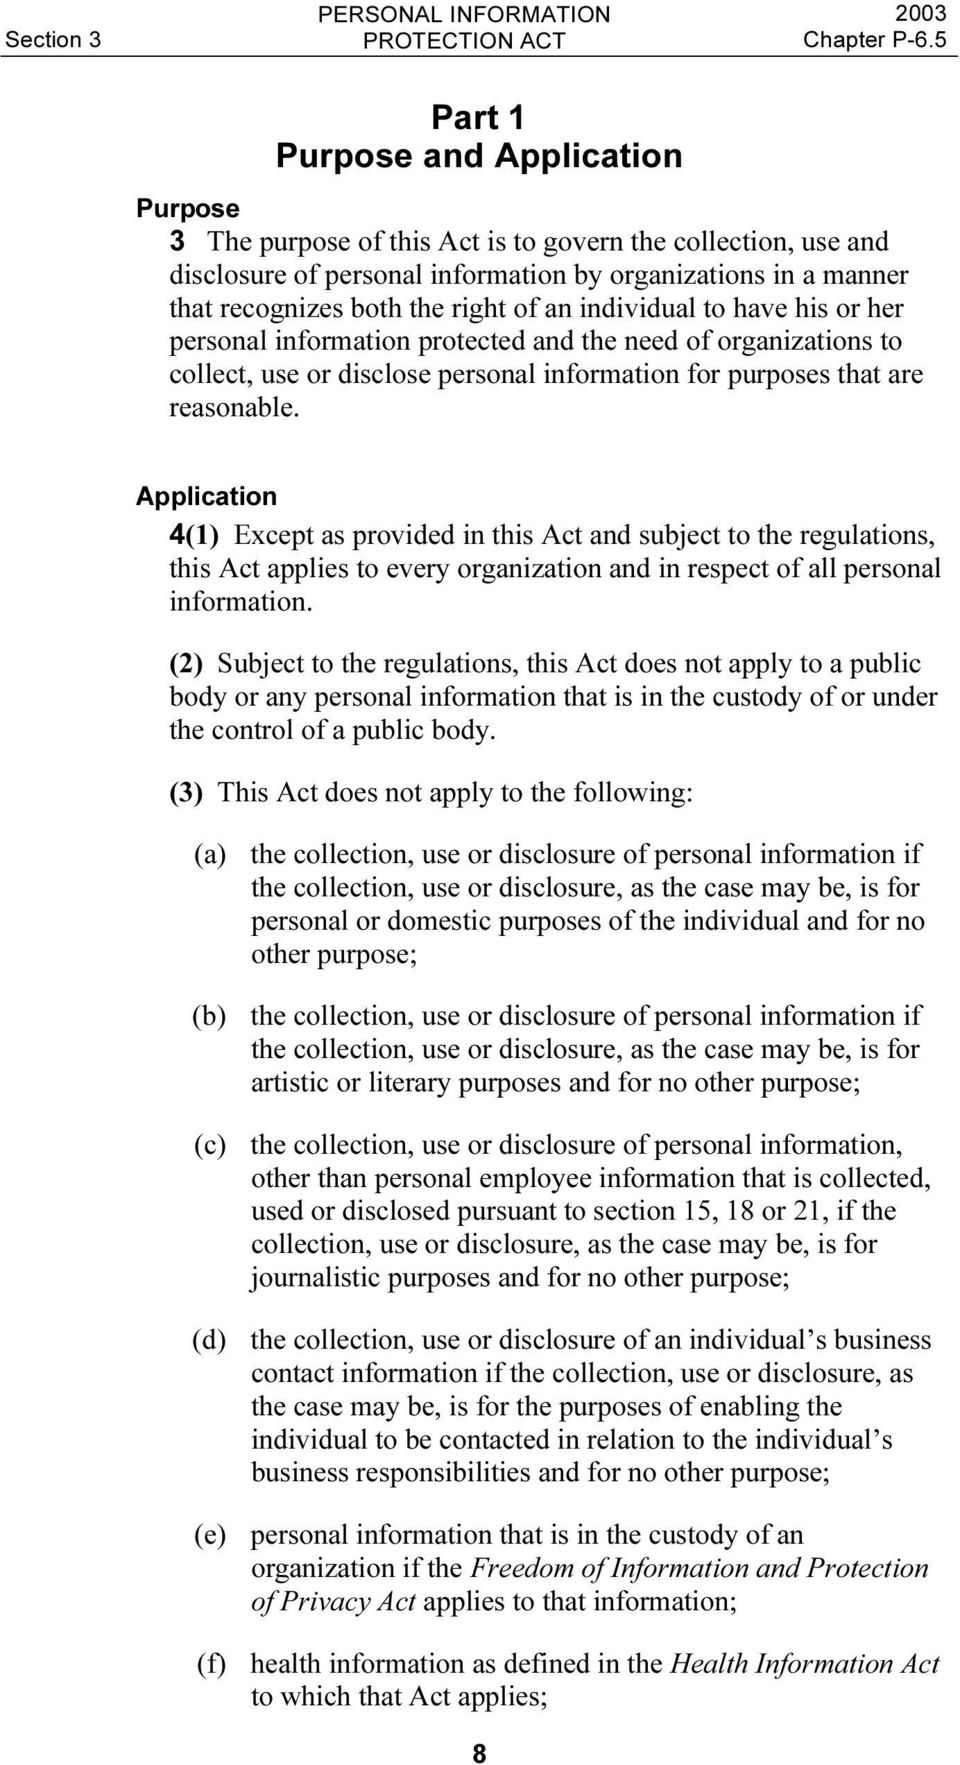 Application 4(1) Except as provided in this Act and subject to the regulations, this Act applies to every organization and in respect of all personal information.